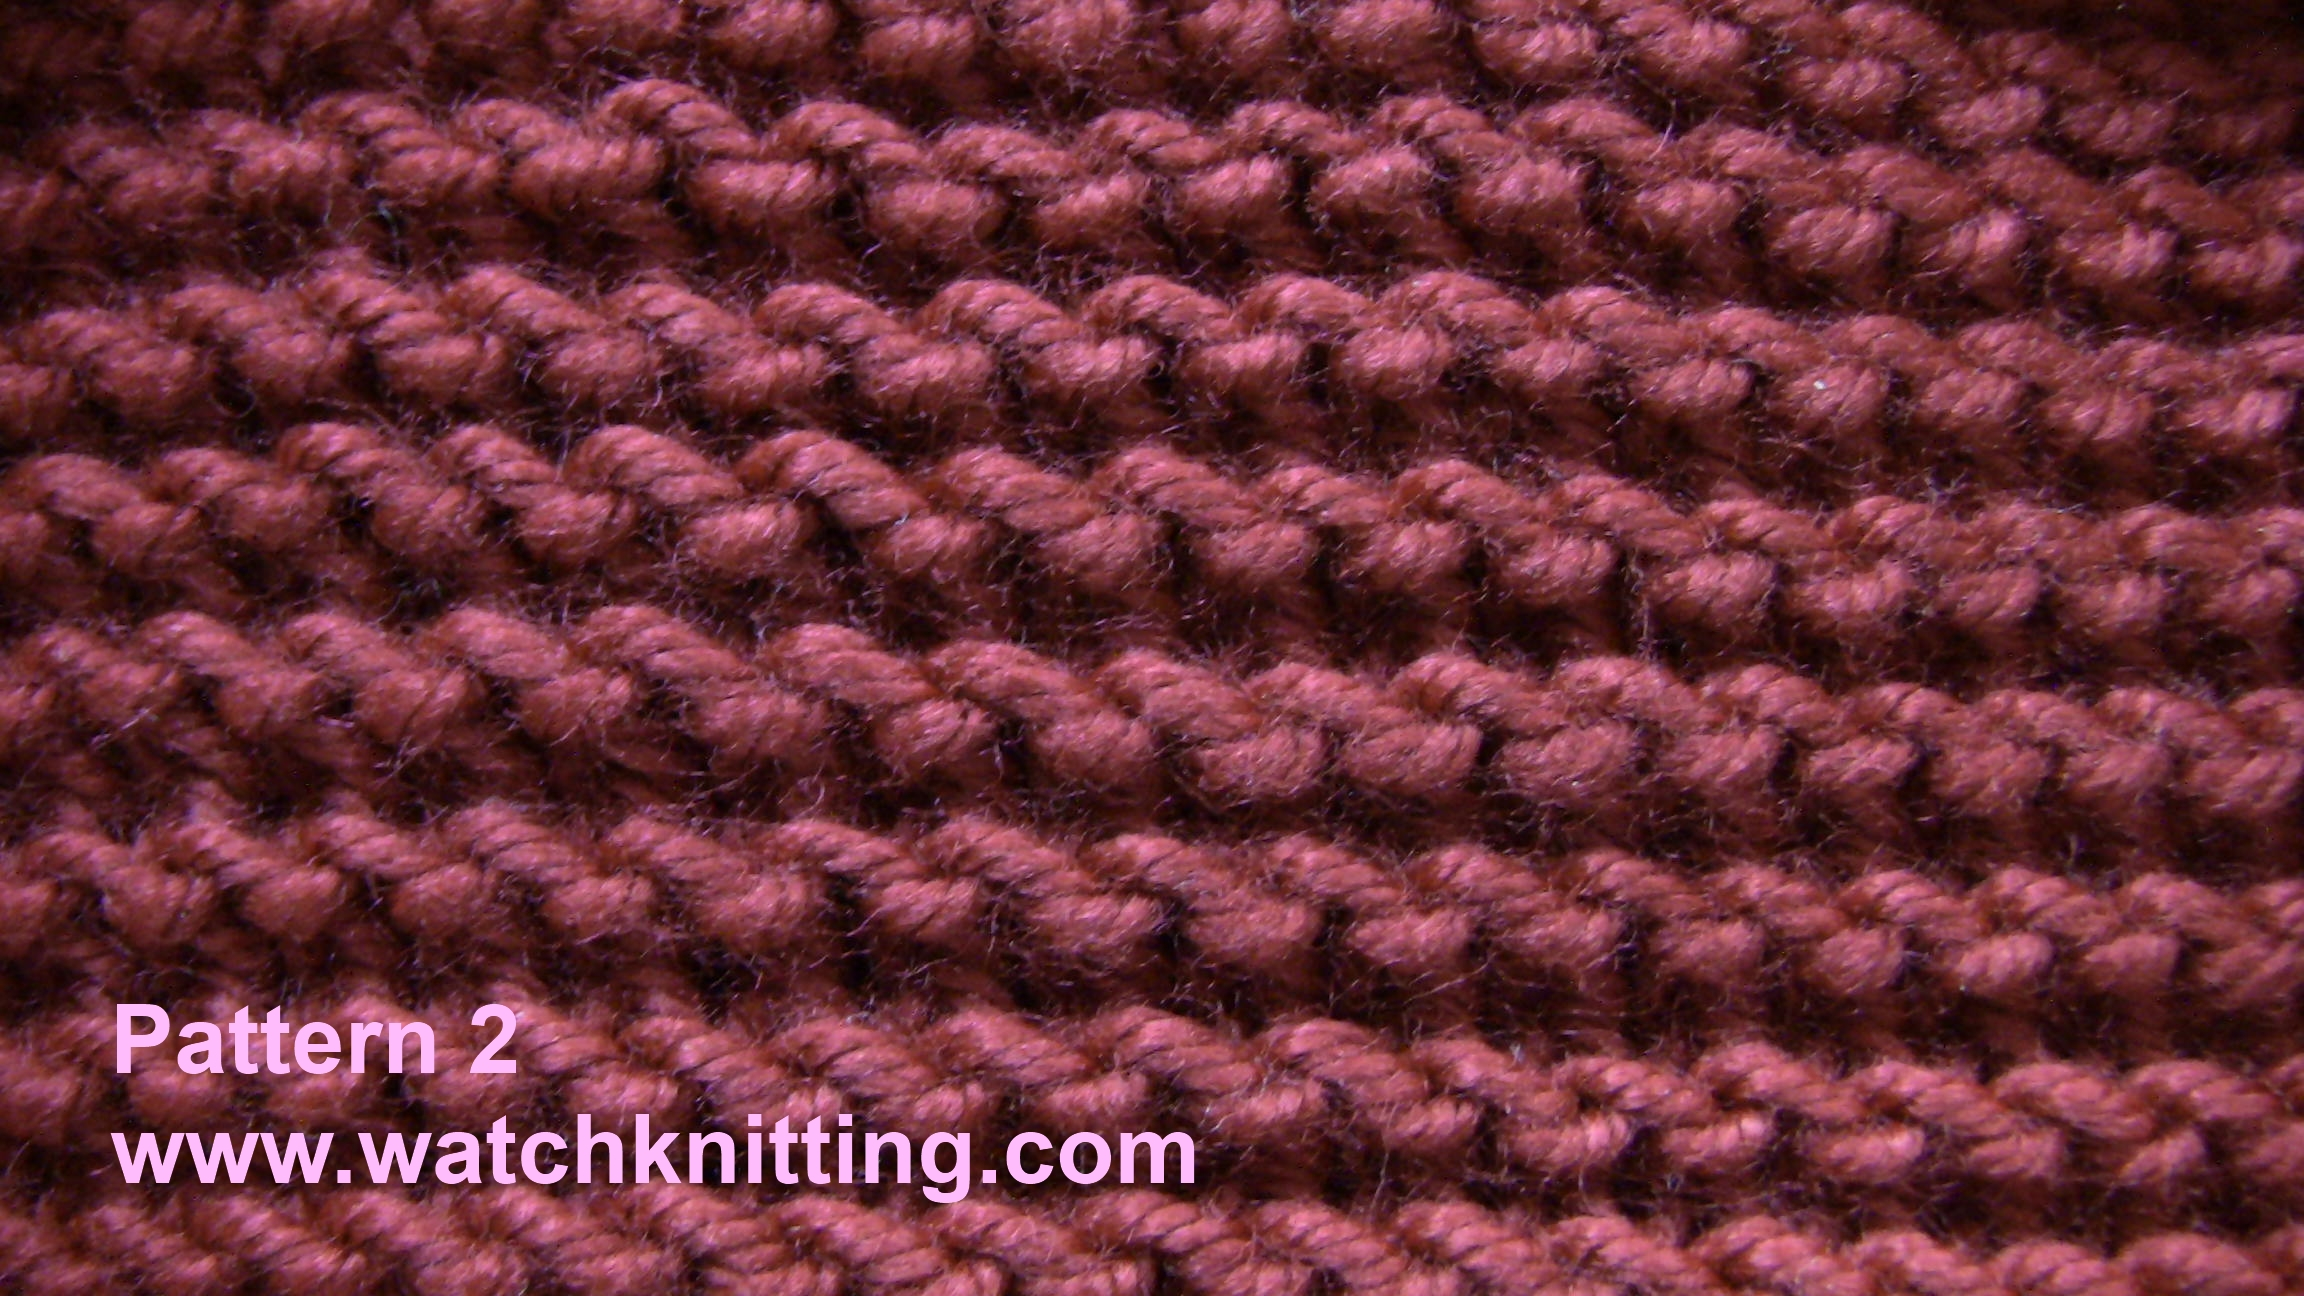 Pattern 2-Simple Knitting Patterns-www.watchknitting.com